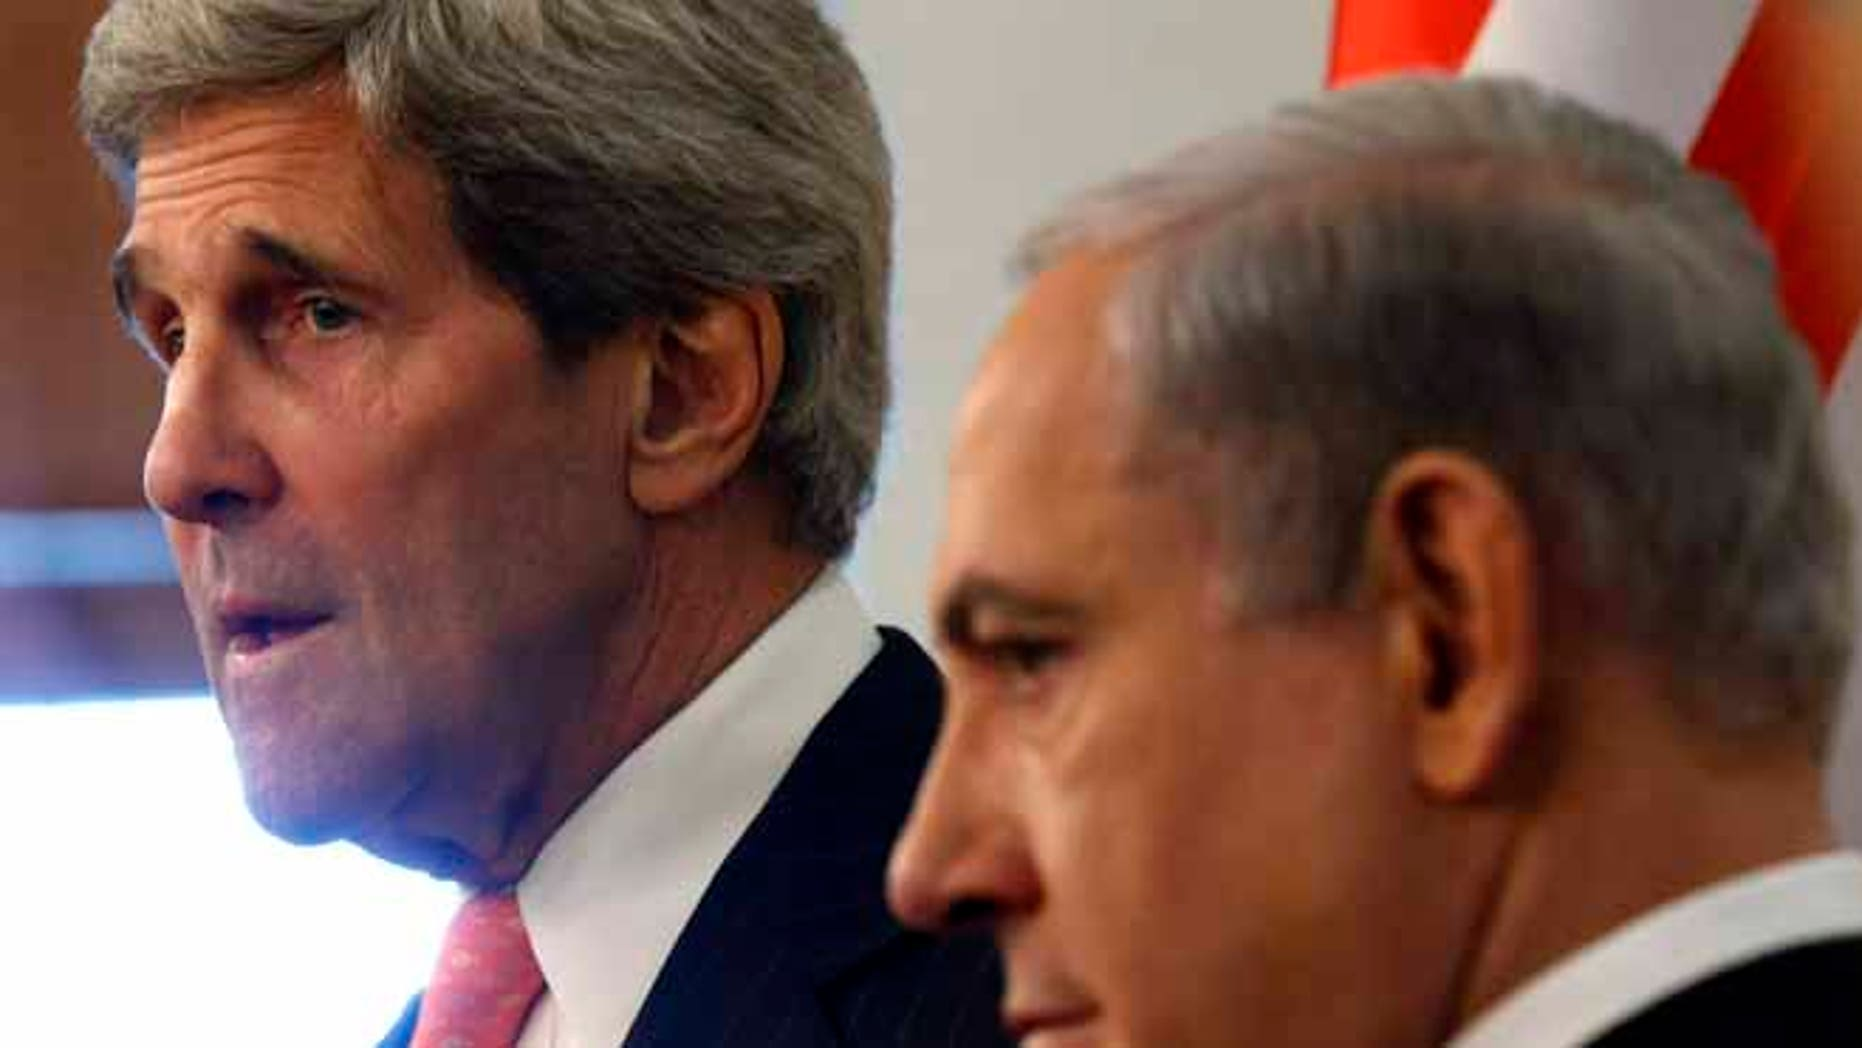 May 23, 2013: U.S. Secretary of State John Kerry, left, meets with Israeli Prime Minster Benjamin Netanyahu in Jerusalem. The United States and Israel are raising hopes for a restart of the Middle East peace process after more than four years of hardly any talks.